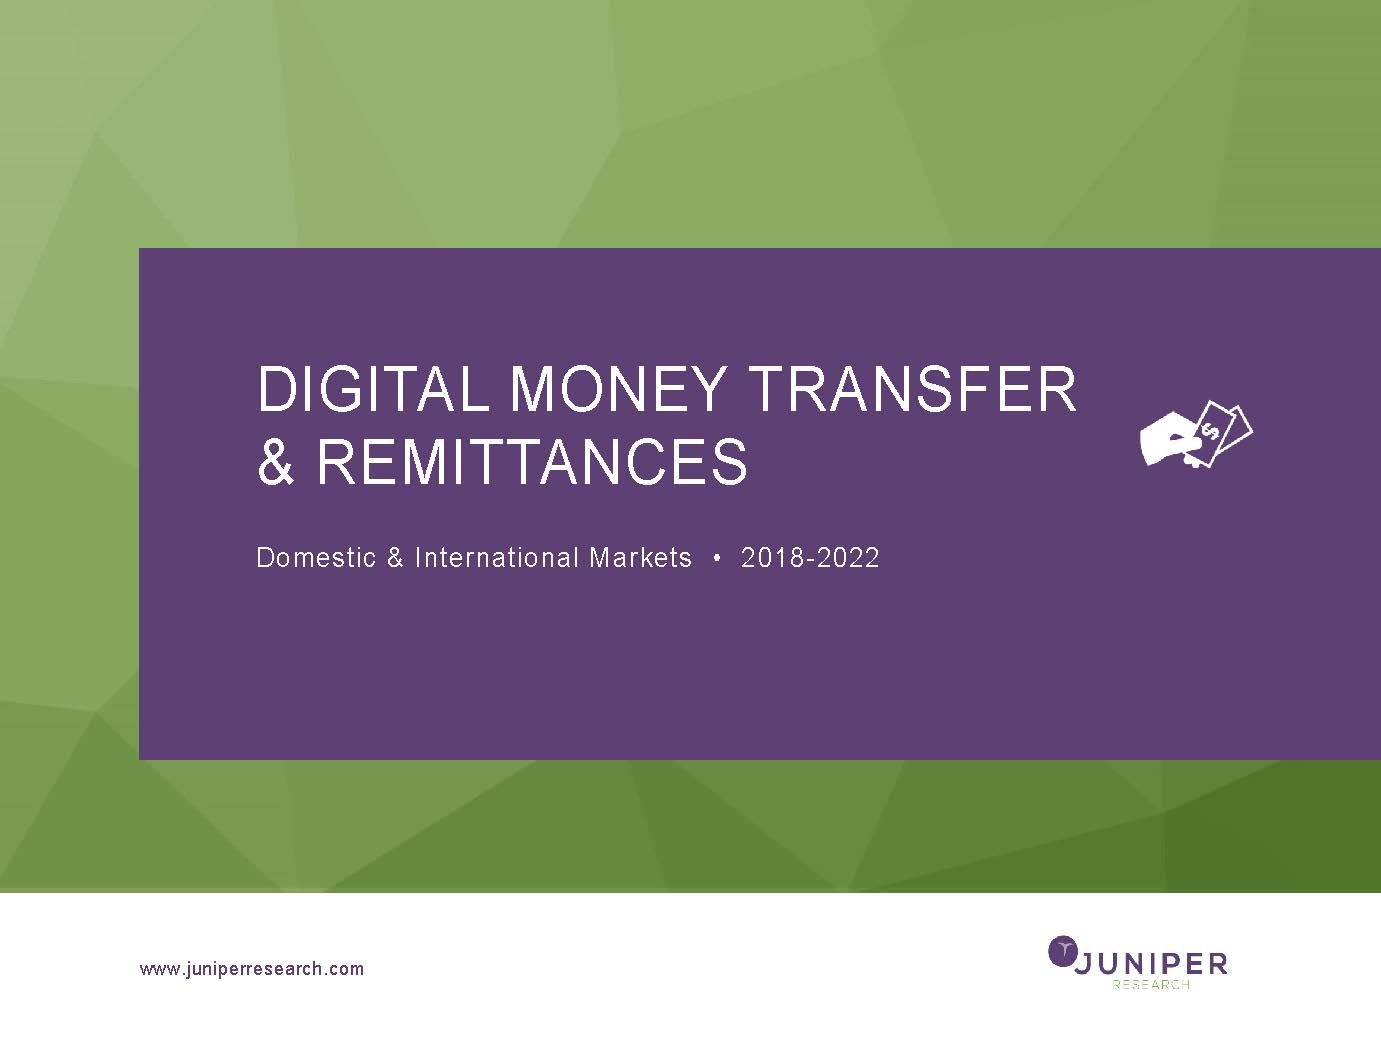 Digital Money Transfer - Deep Dive Strategy & Competition 2018-2022